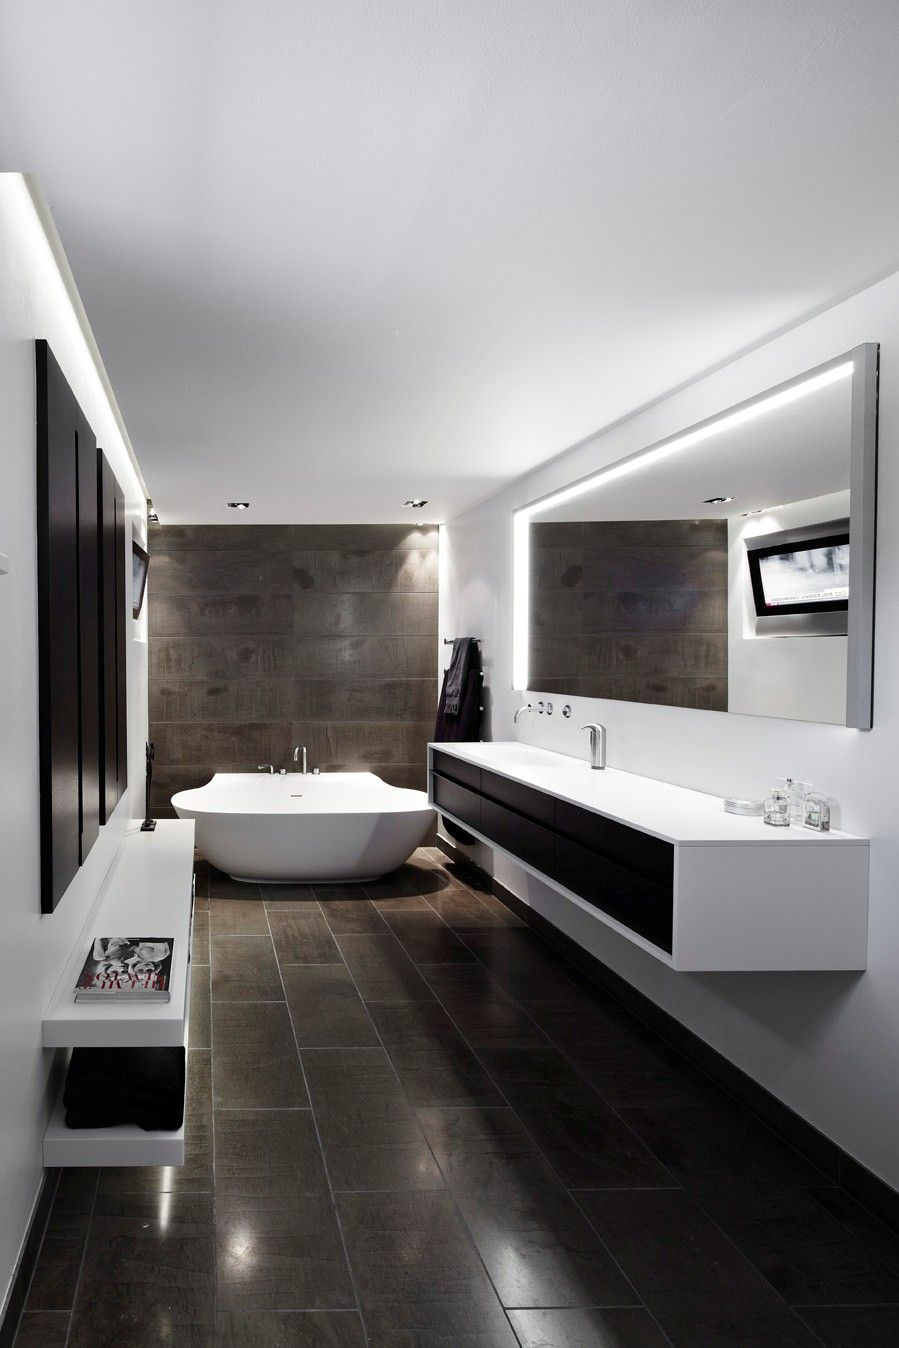 Villa E Bjarnhoff A S Bathroom Design Interior Bathroom Interior Small Bathroom Remodel Modern Bathroom Design